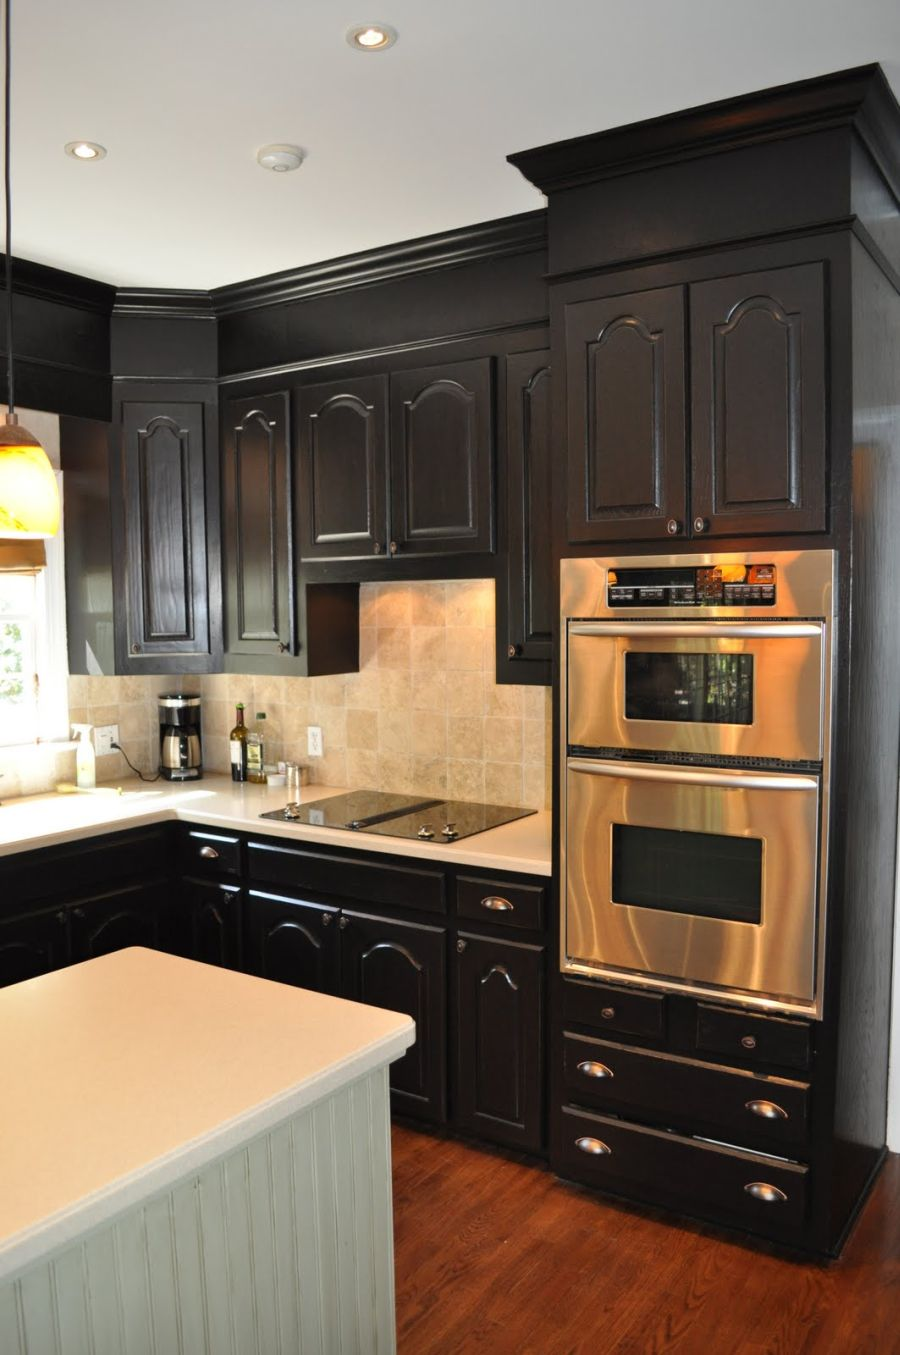 Facts to know about black kitchen cabinet